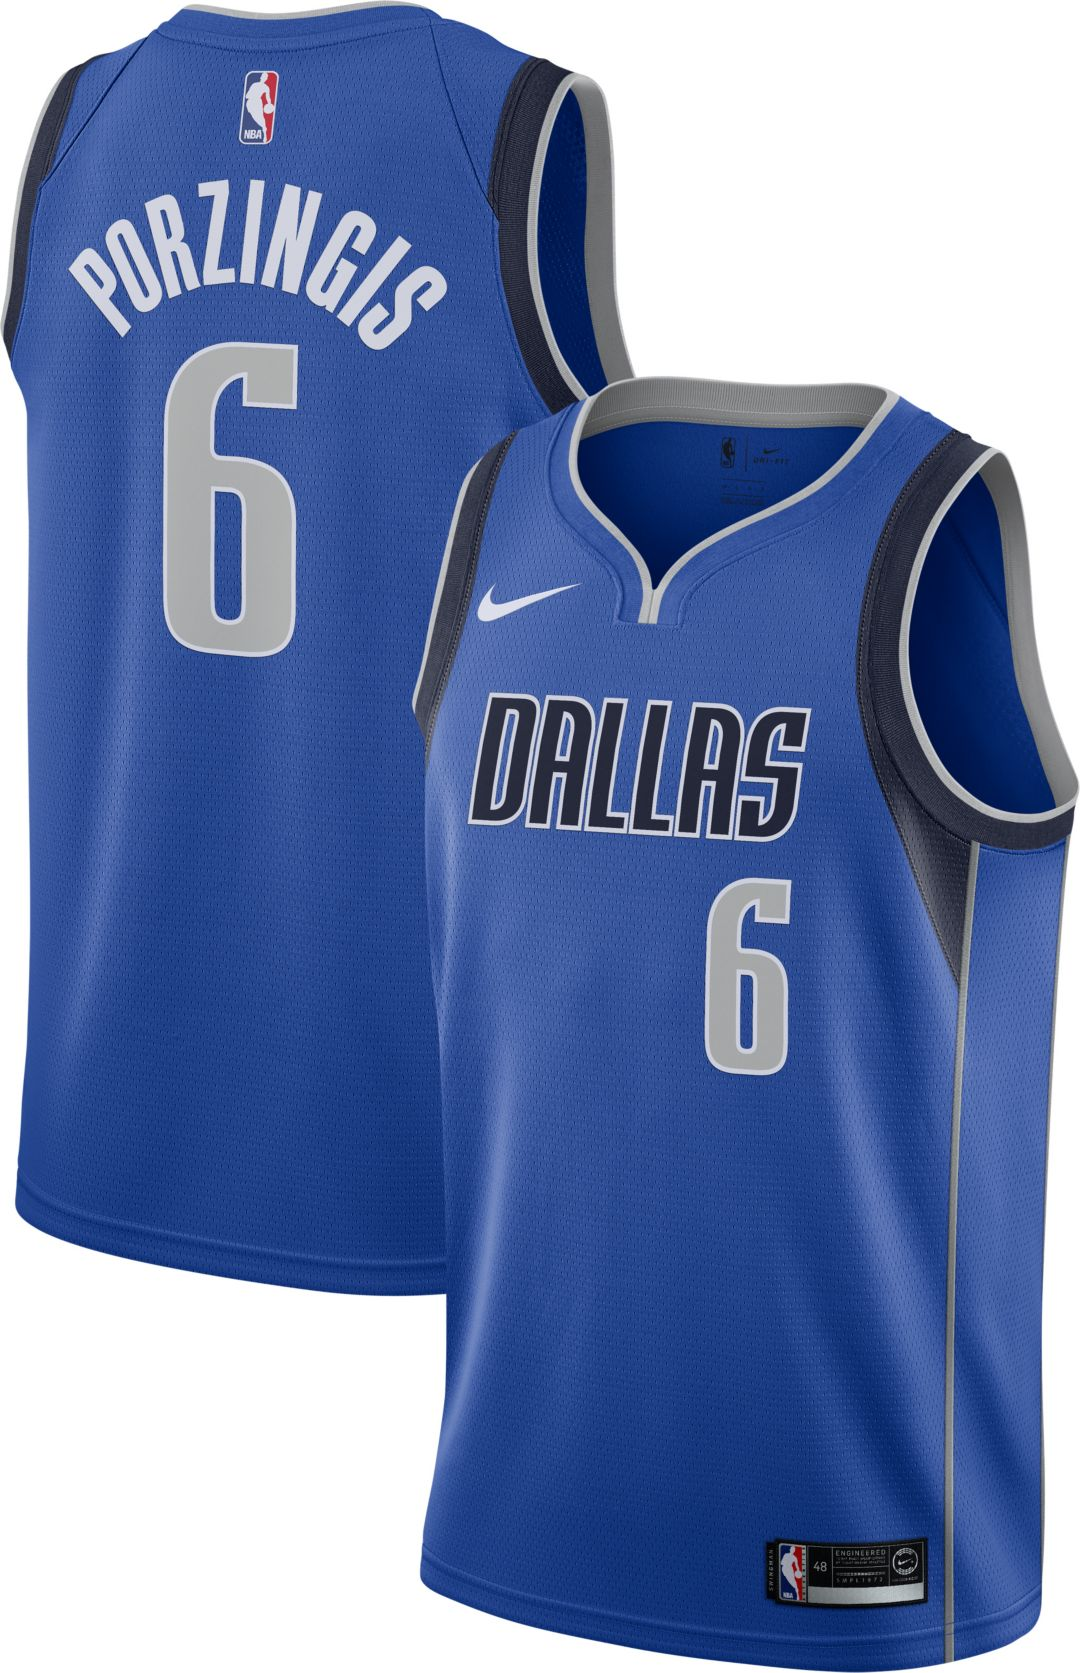 check out b4c74 de599 Nike Men's Dallas Mavericks Kristaps Porzingis #6 Blue Dri-FIT Swingman  Jersey